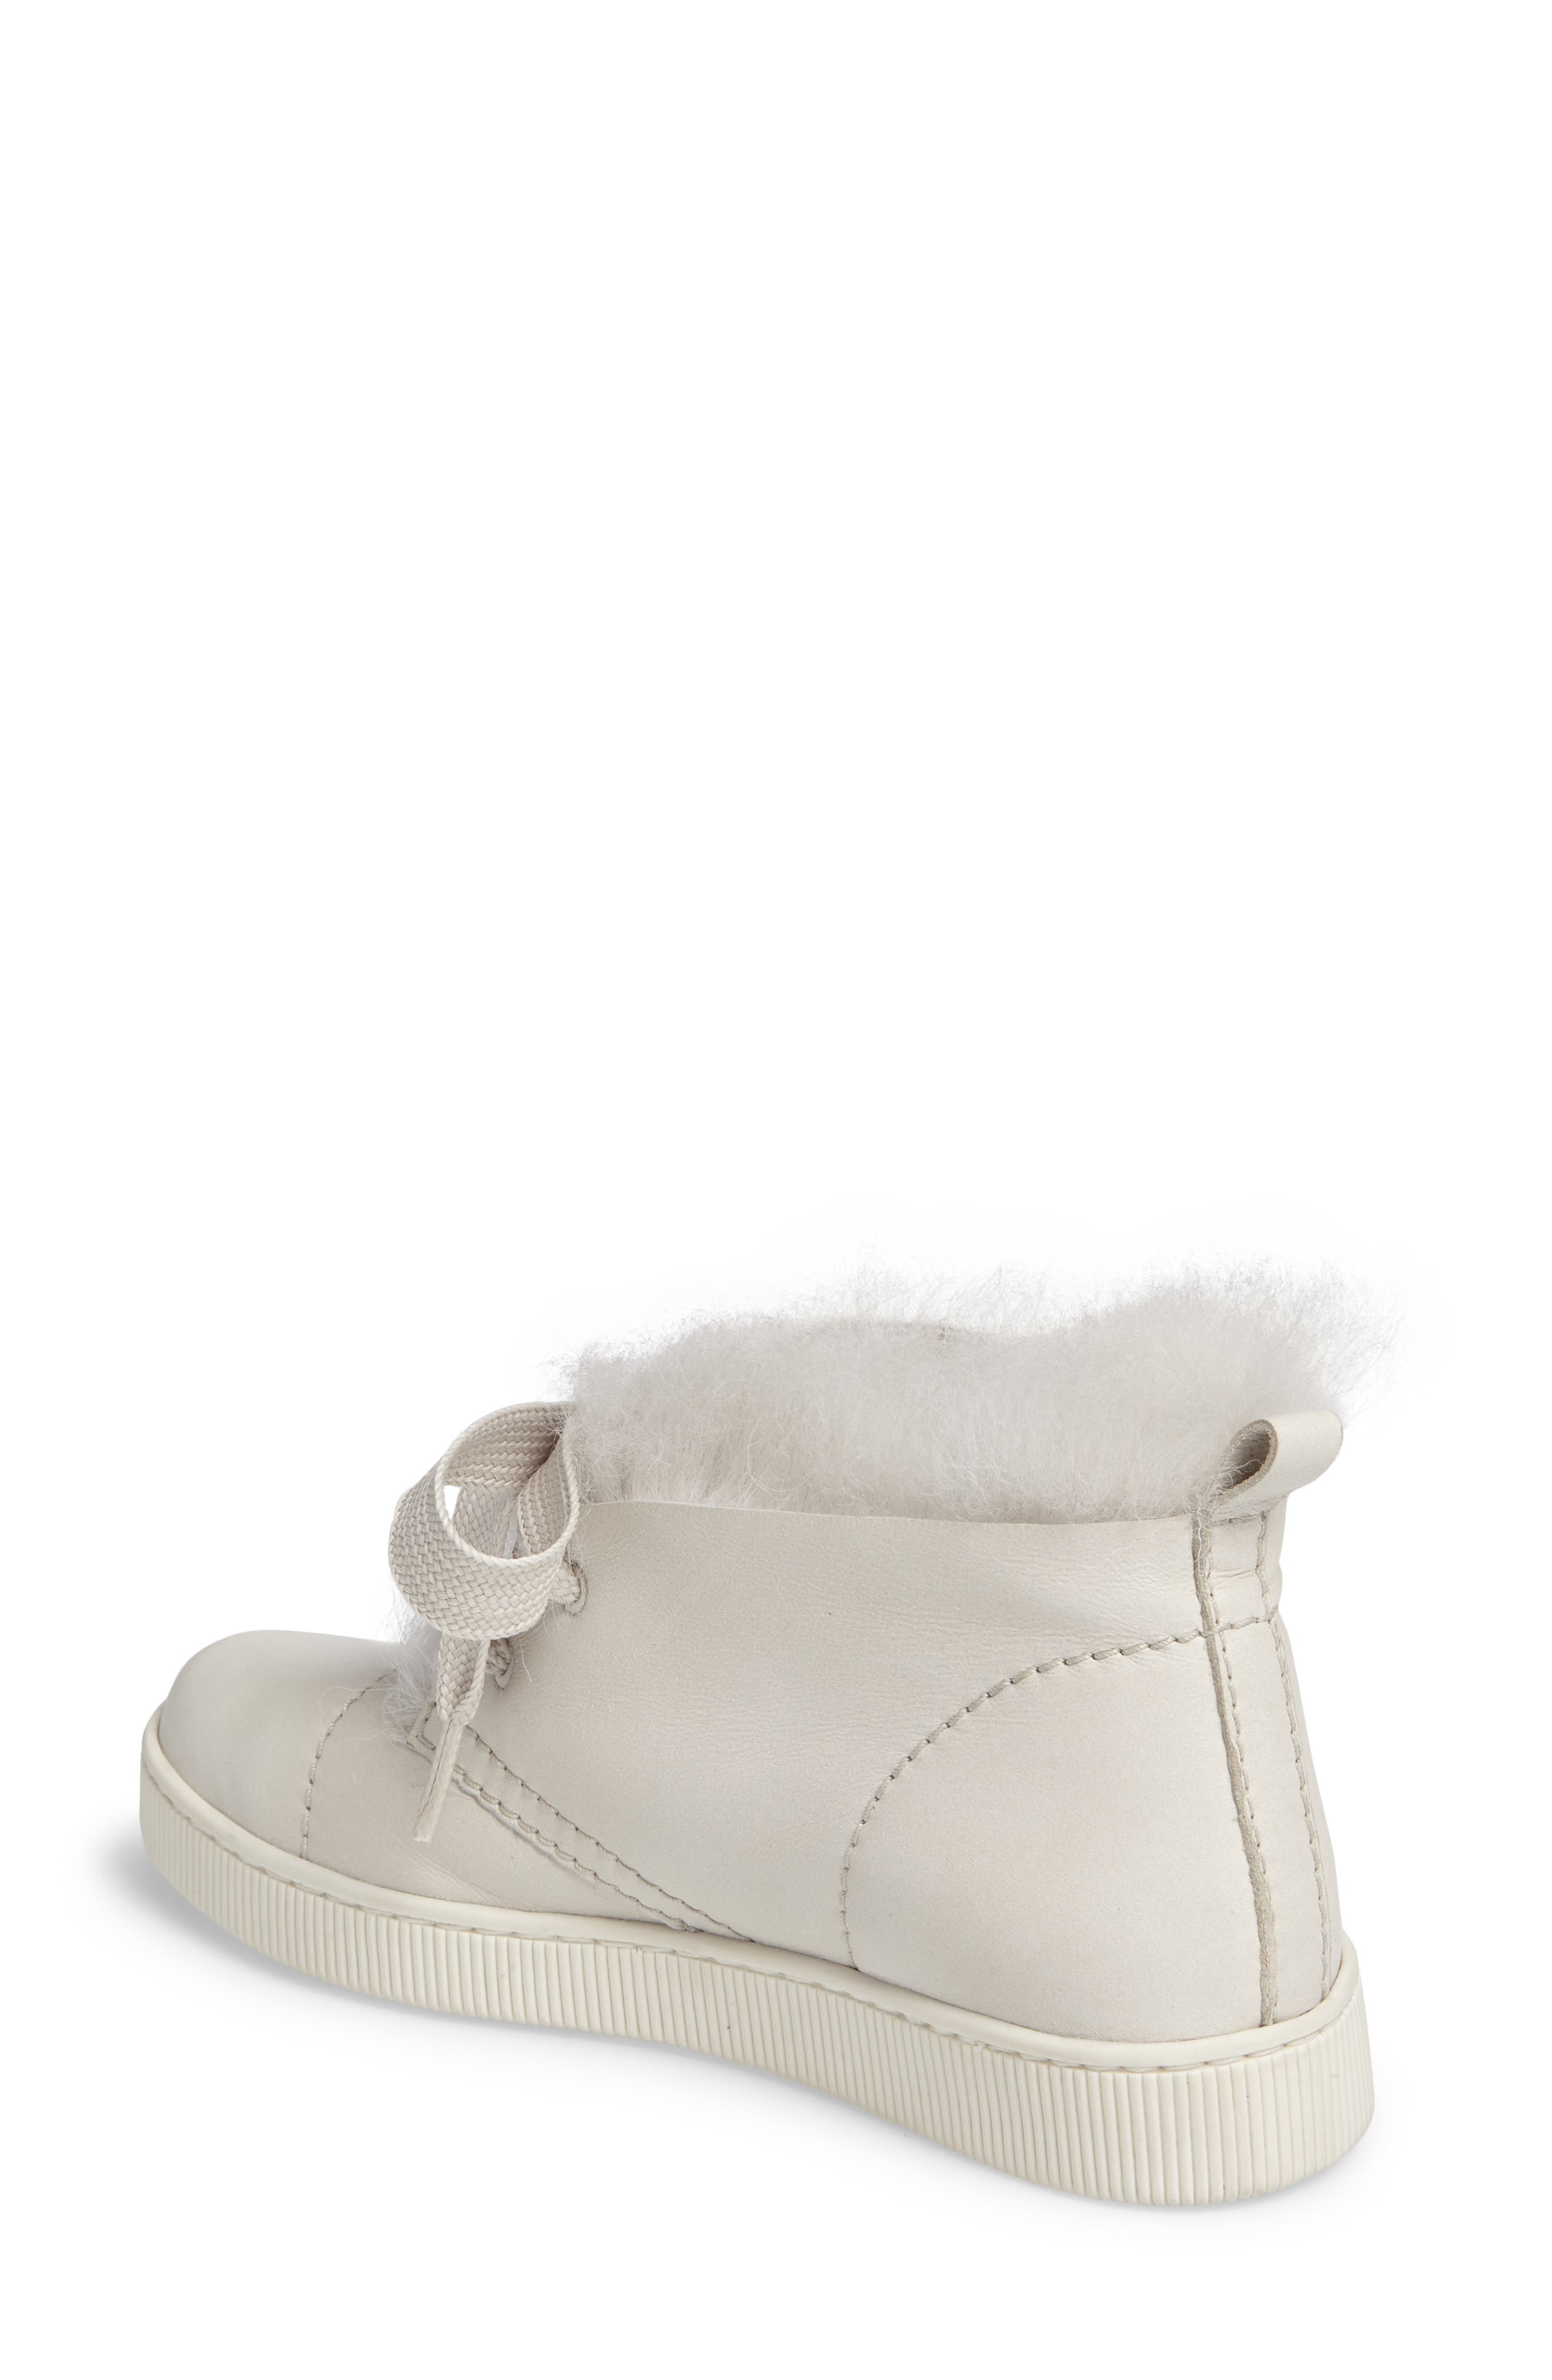 Parley Genuine Shearling & Leather Sneaker,                             Alternate thumbnail 4, color,